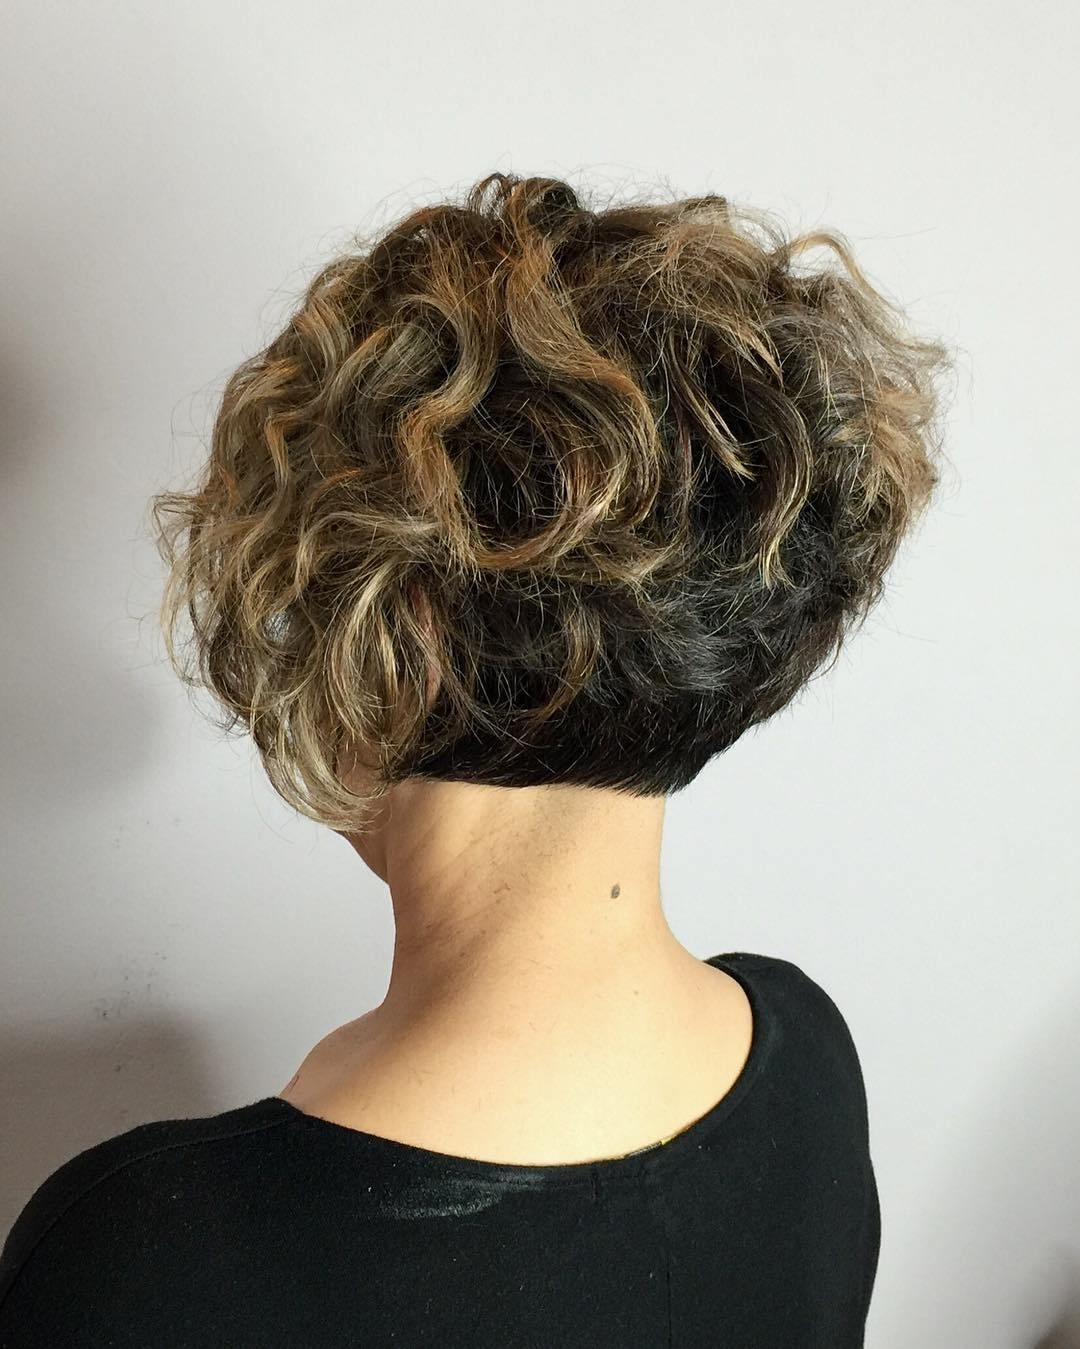 hairstyles for short curly hair 8 - Hairstyles For Short Curly Hair